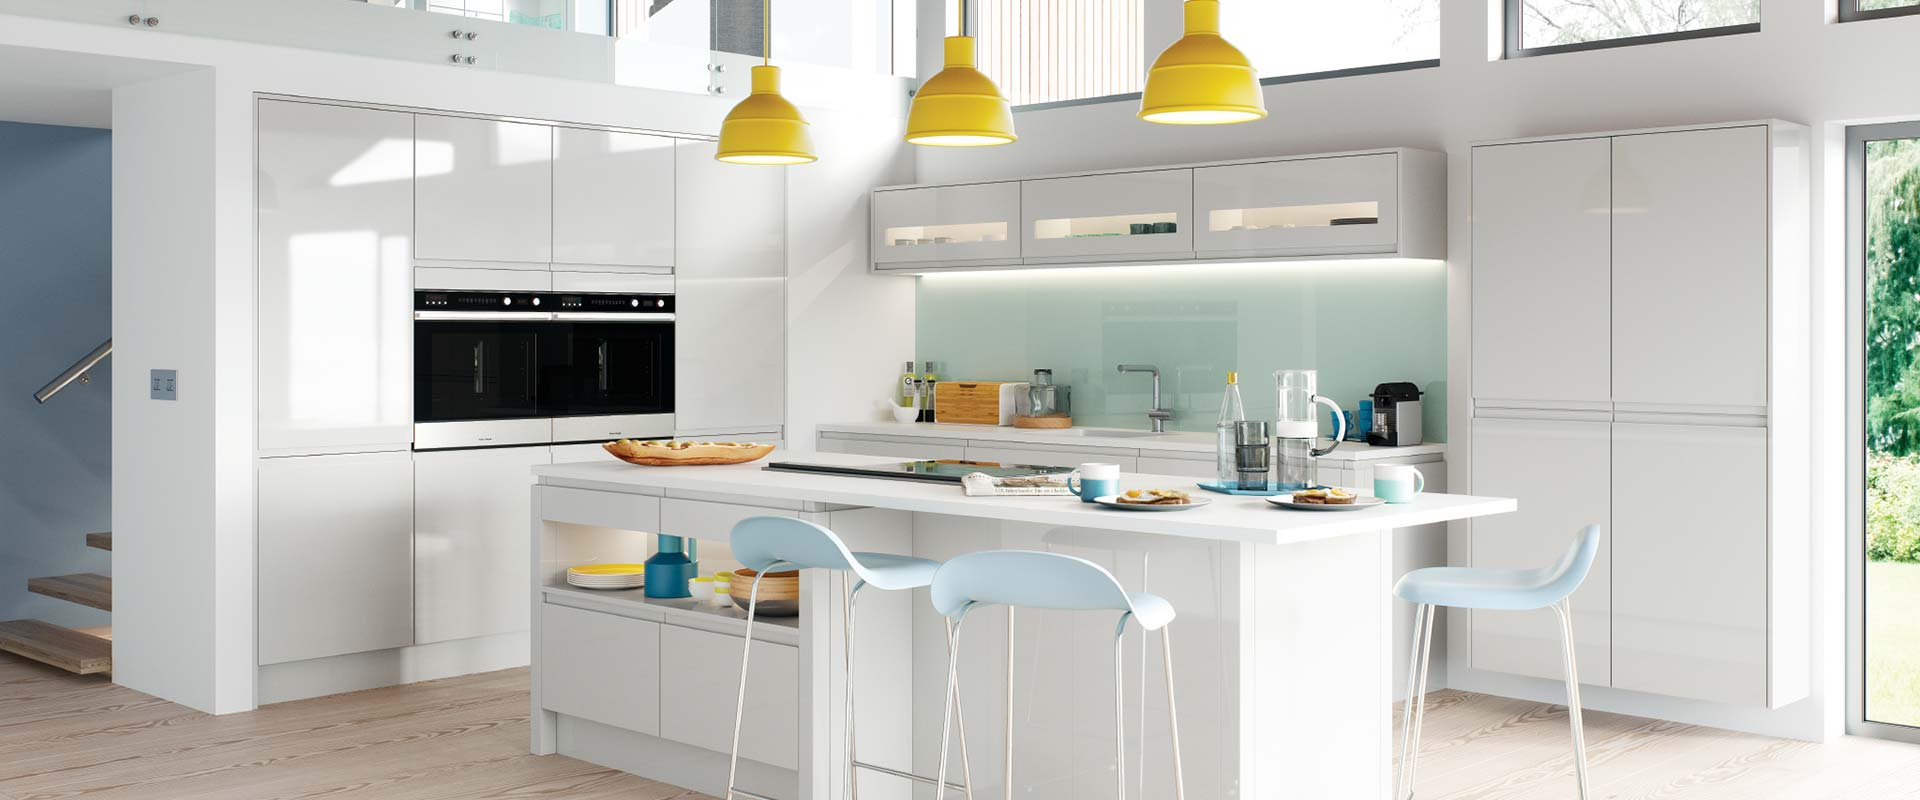 Kitchens Amp Bathrooms Droitwich Appletree Interiors Droitwich